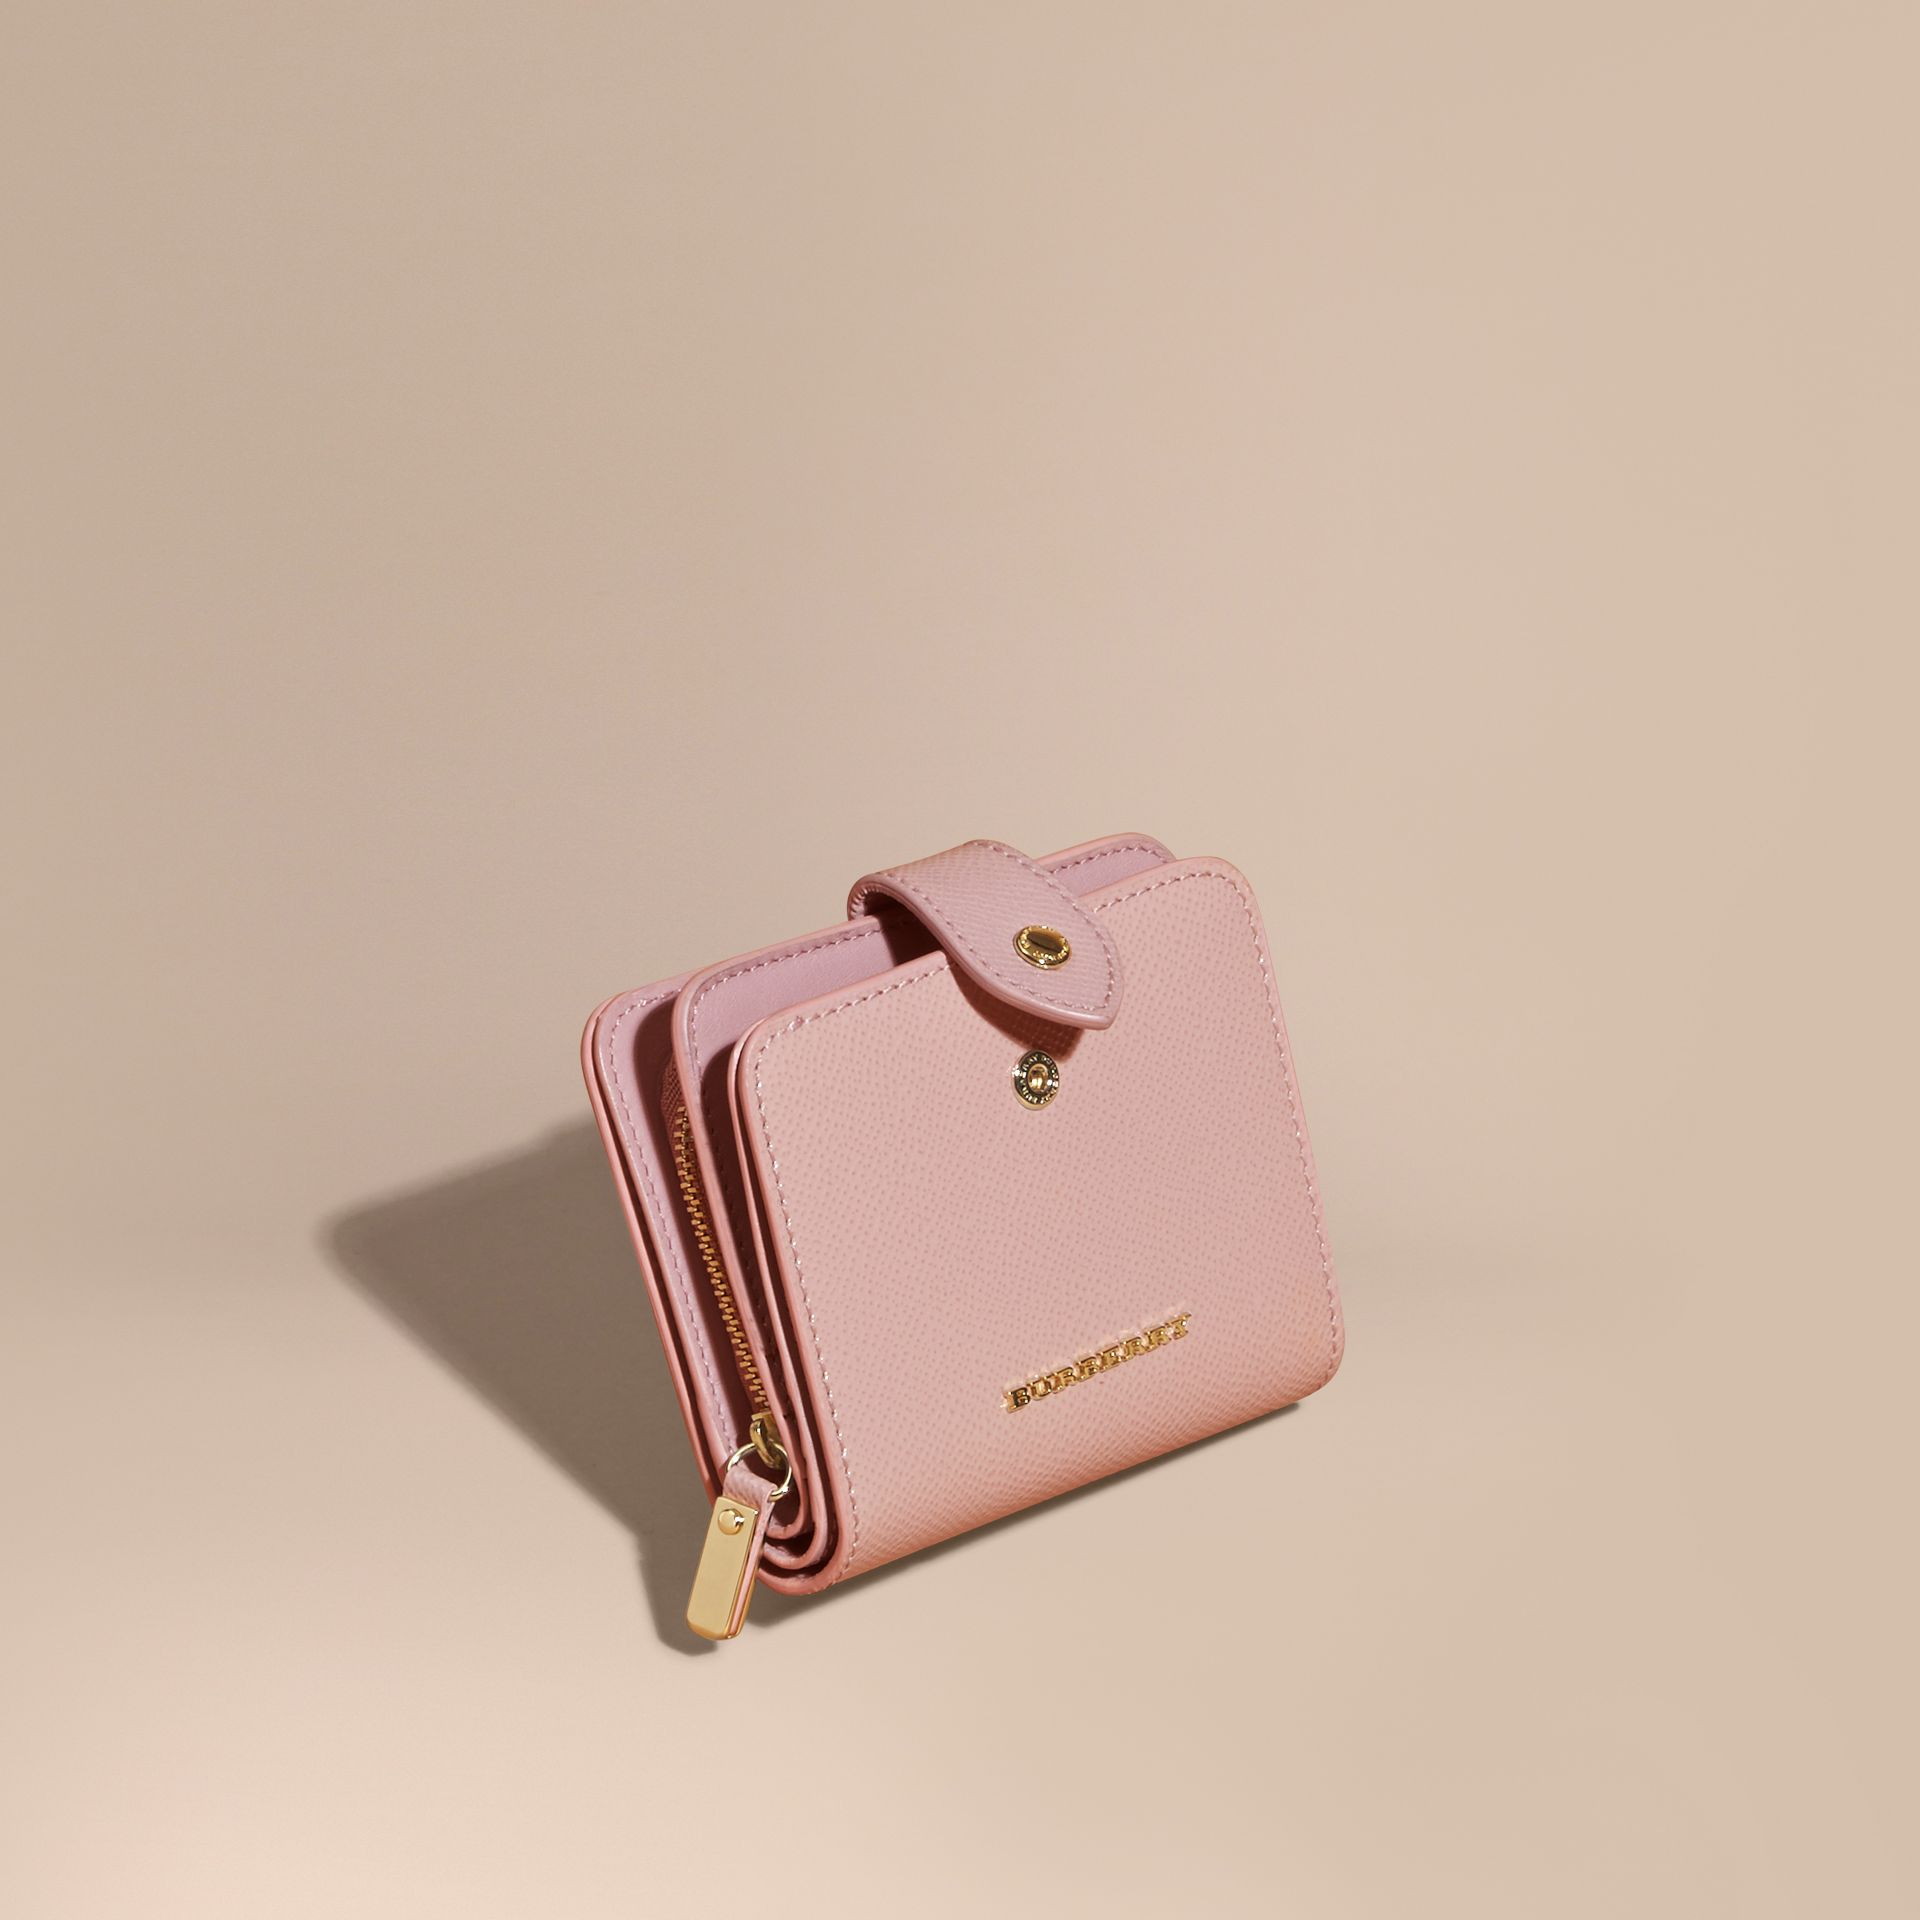 Patent London Leather Wallet in Ash Rose - gallery image 1